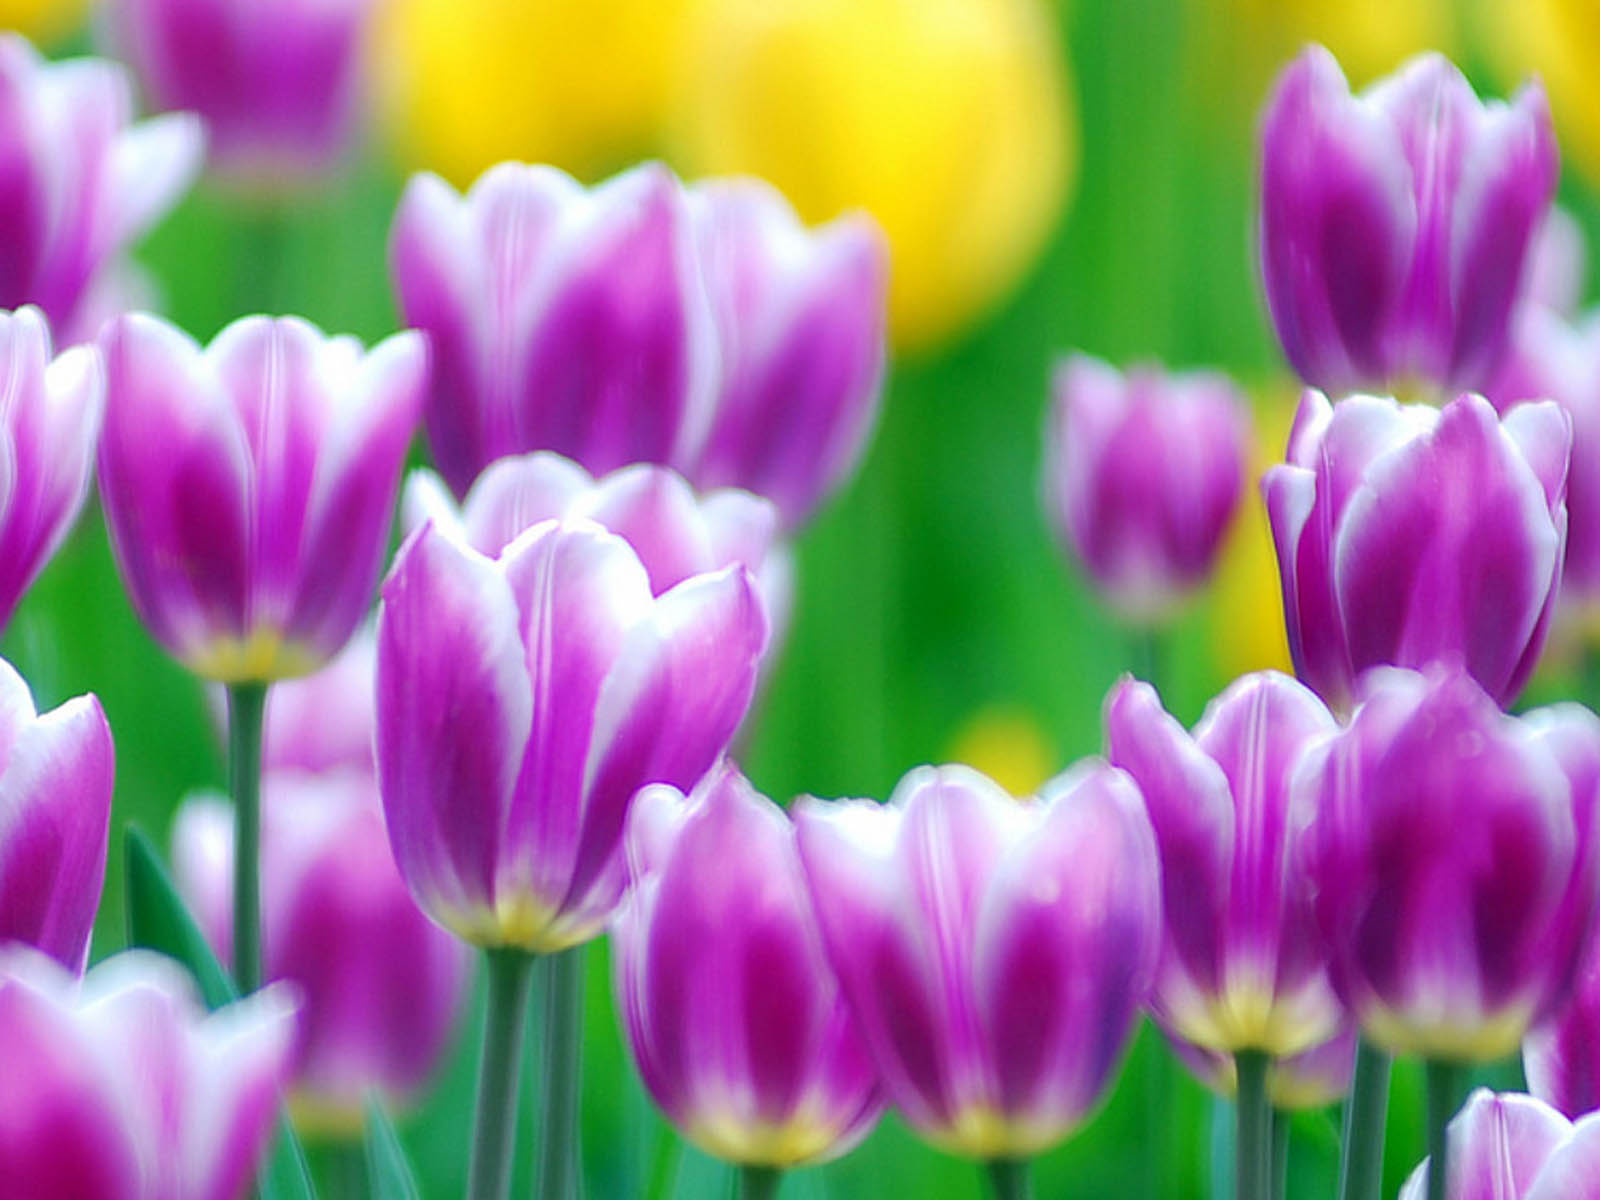 Wallpapers: Purple Tulips Flowers Wallpapers